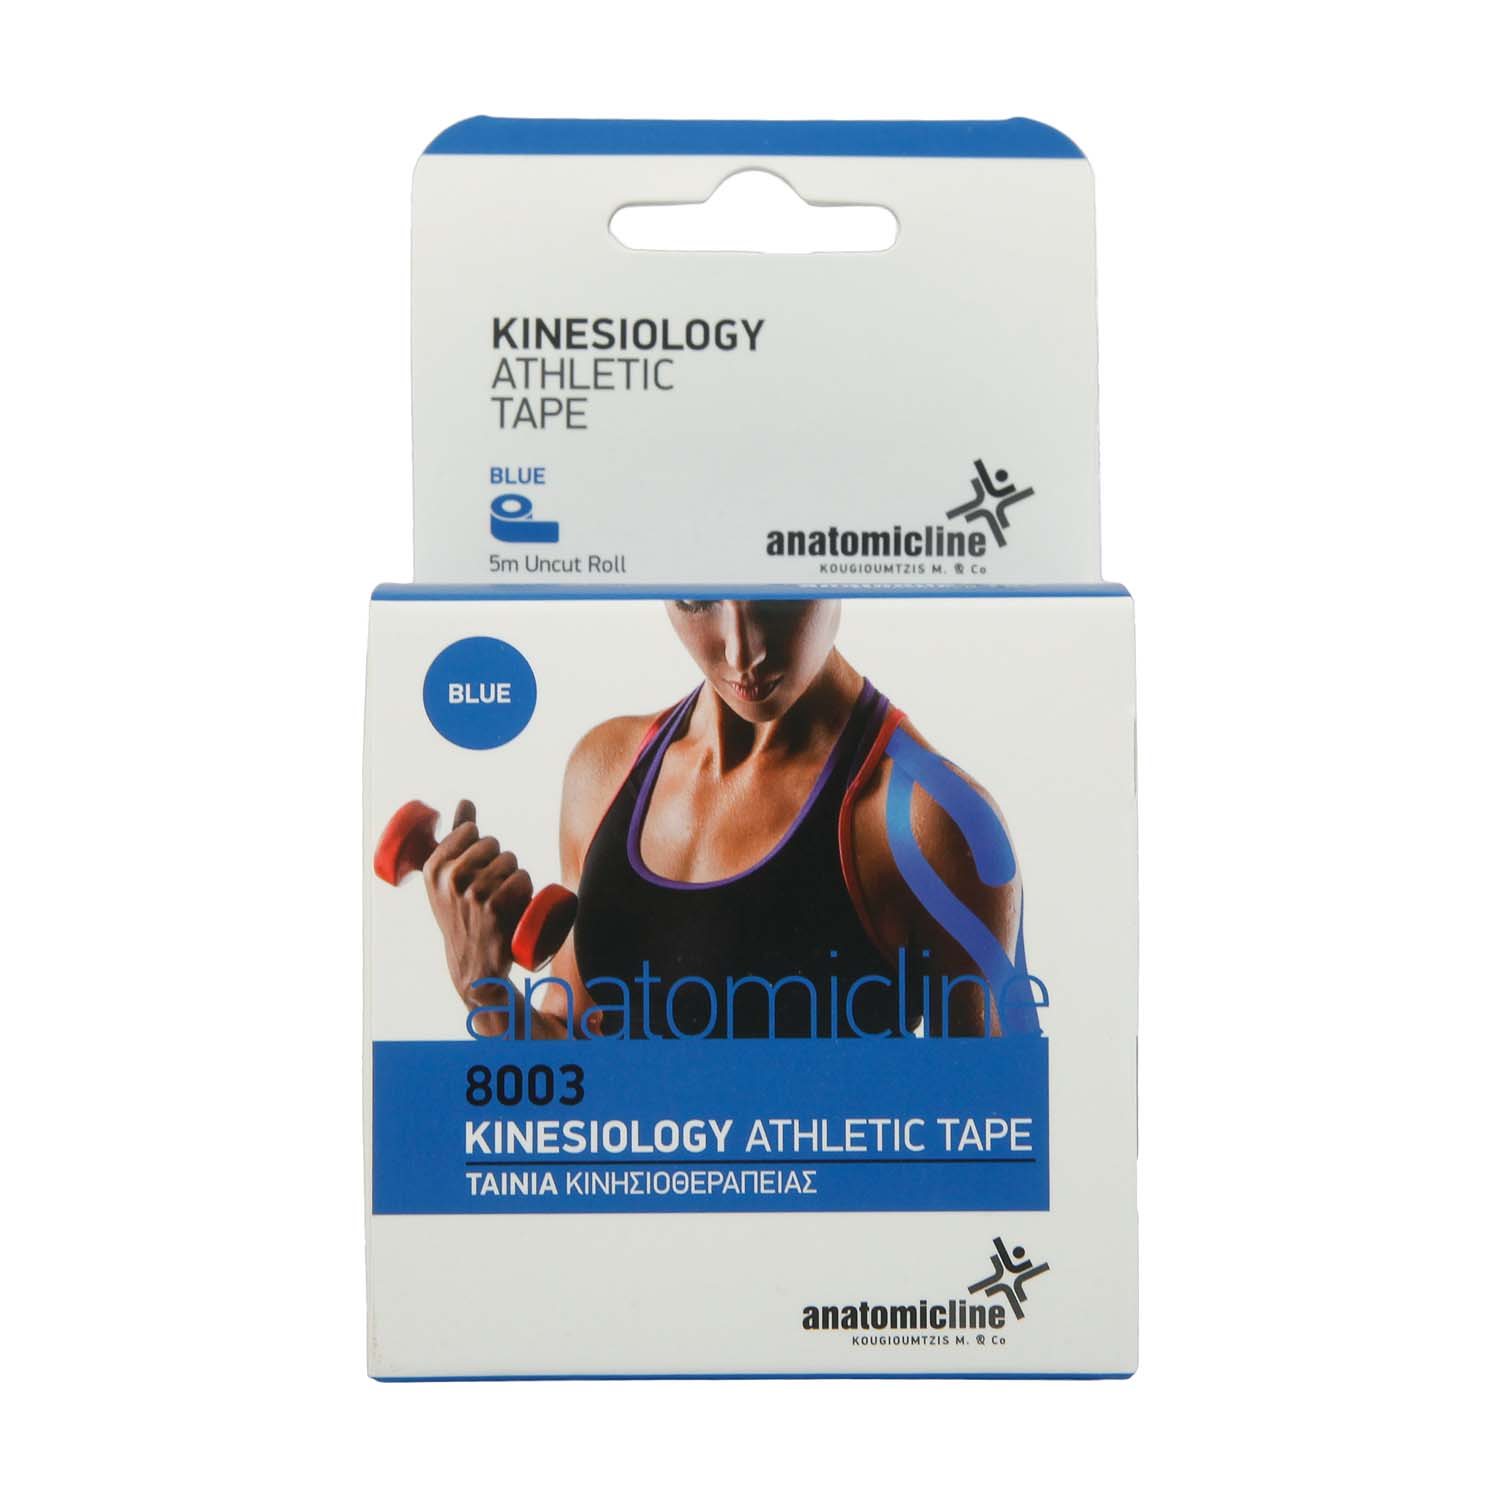 Kinesiology Athletic Tape Blue